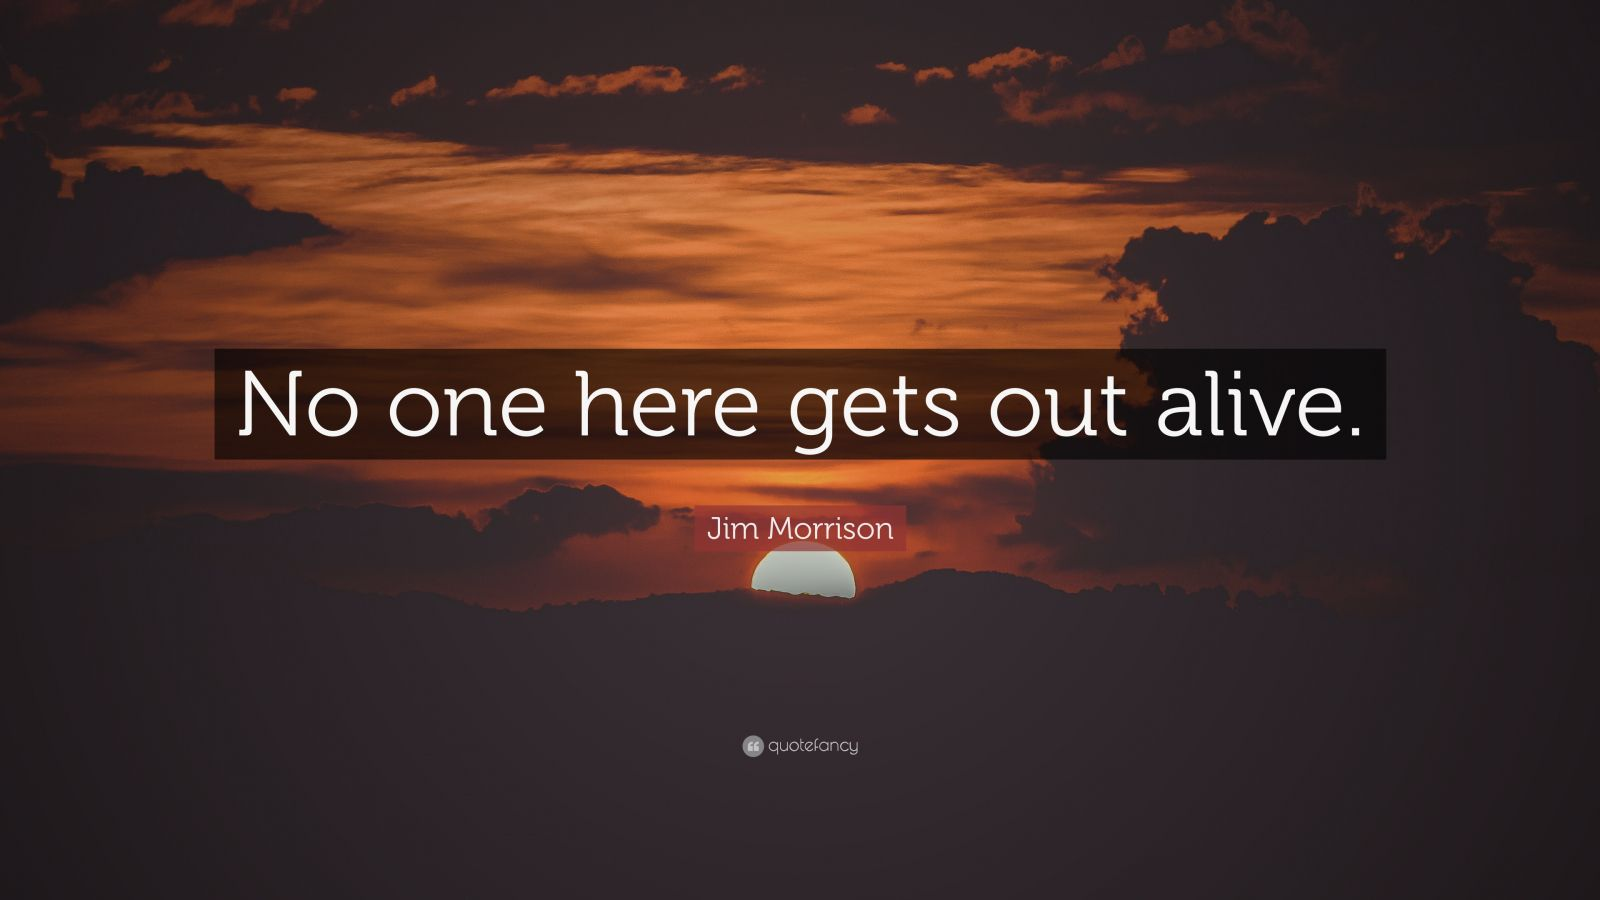 Douglas Adams Quotes Wallpaper Jim Morrison Quote No One Here Gets Out Alive 15